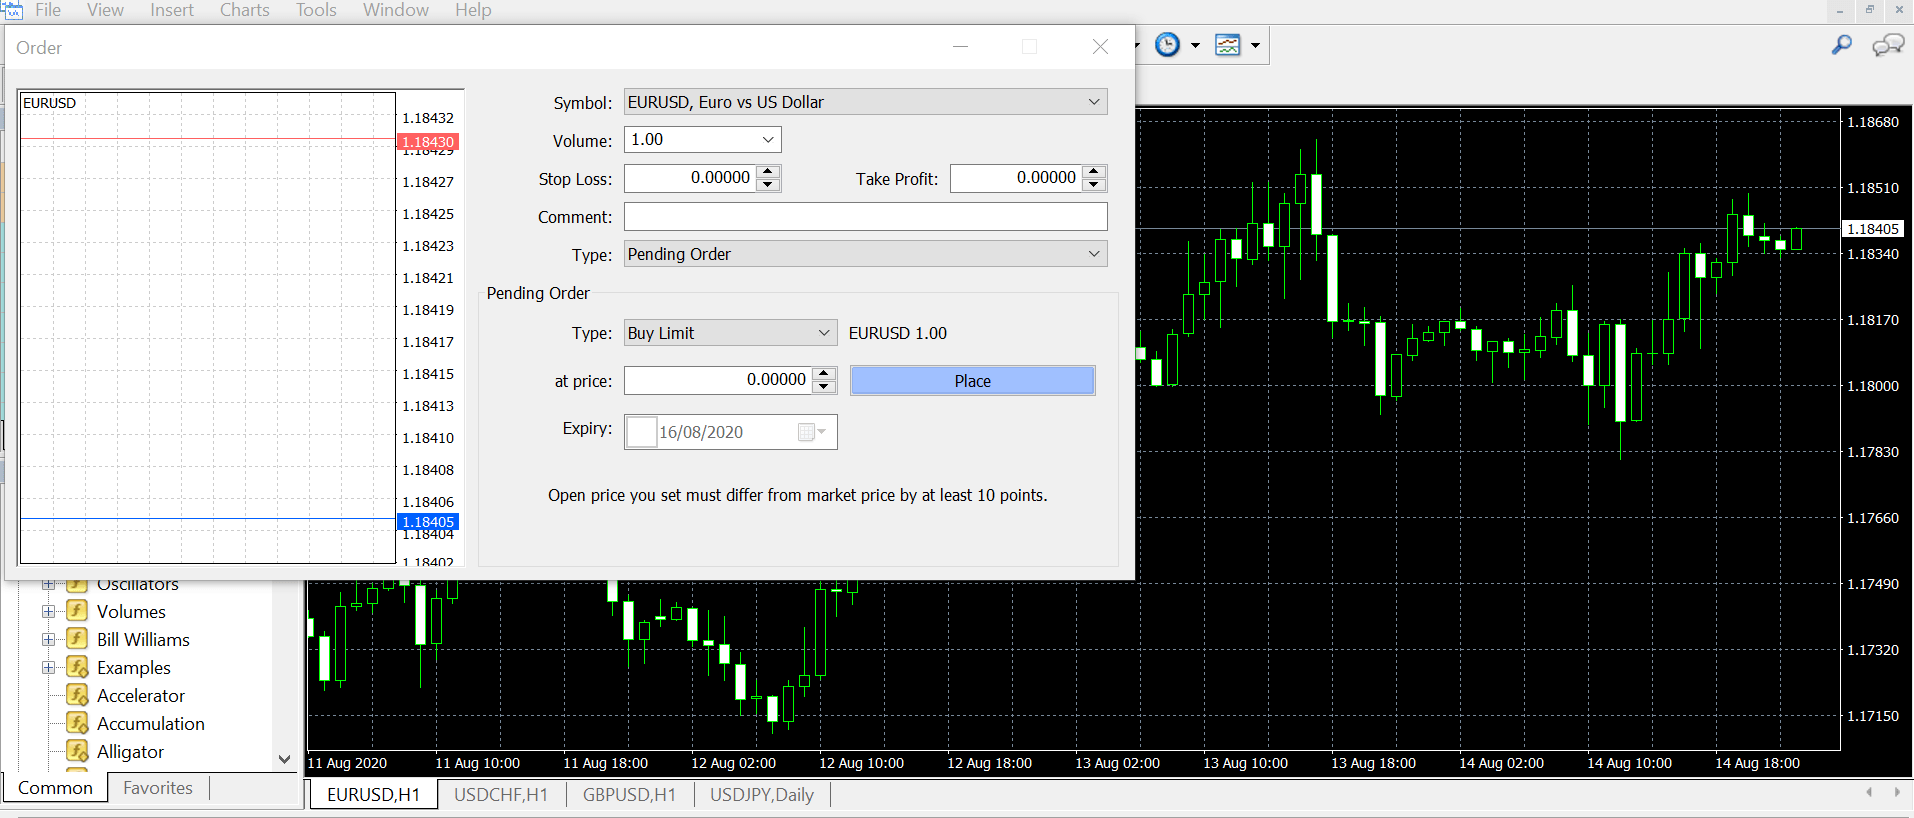 tradingplatforms-metatrader4-whatismt4-and-howtouseit-pending-order-image